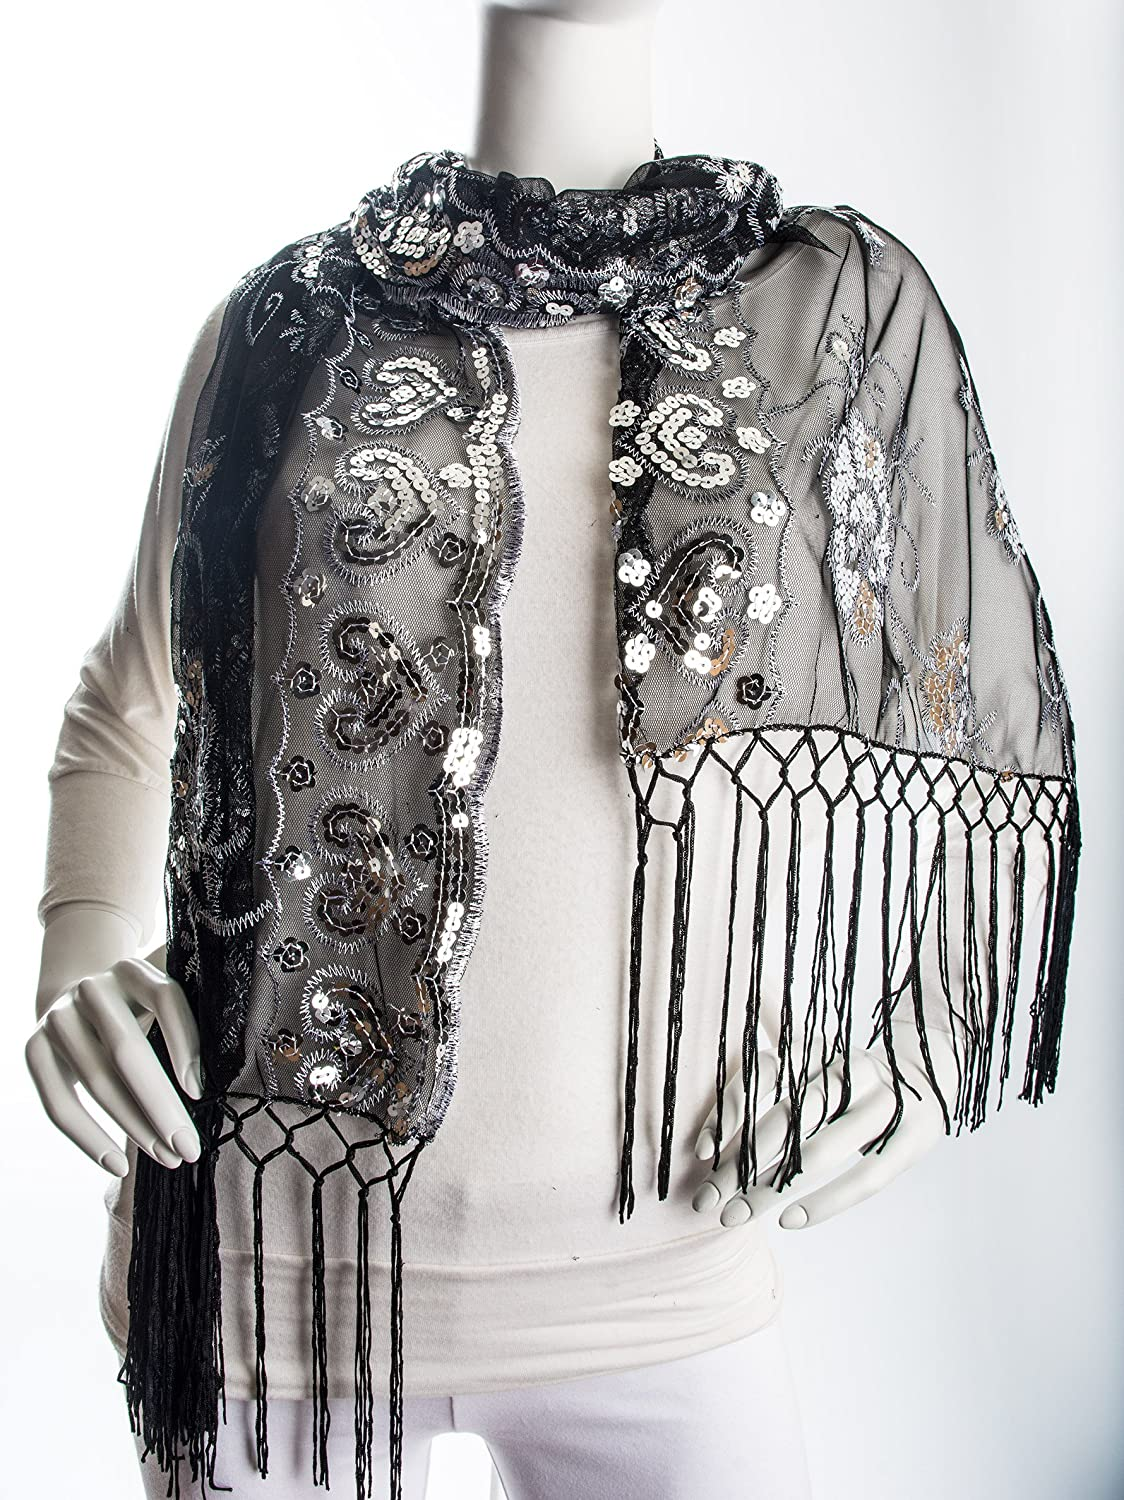 Vintage Scarf Styles -1920s to 1960s Bohomonde Madison Shawl Long Fringe Sequin Evening Wrap $14.95 AT vintagedancer.com